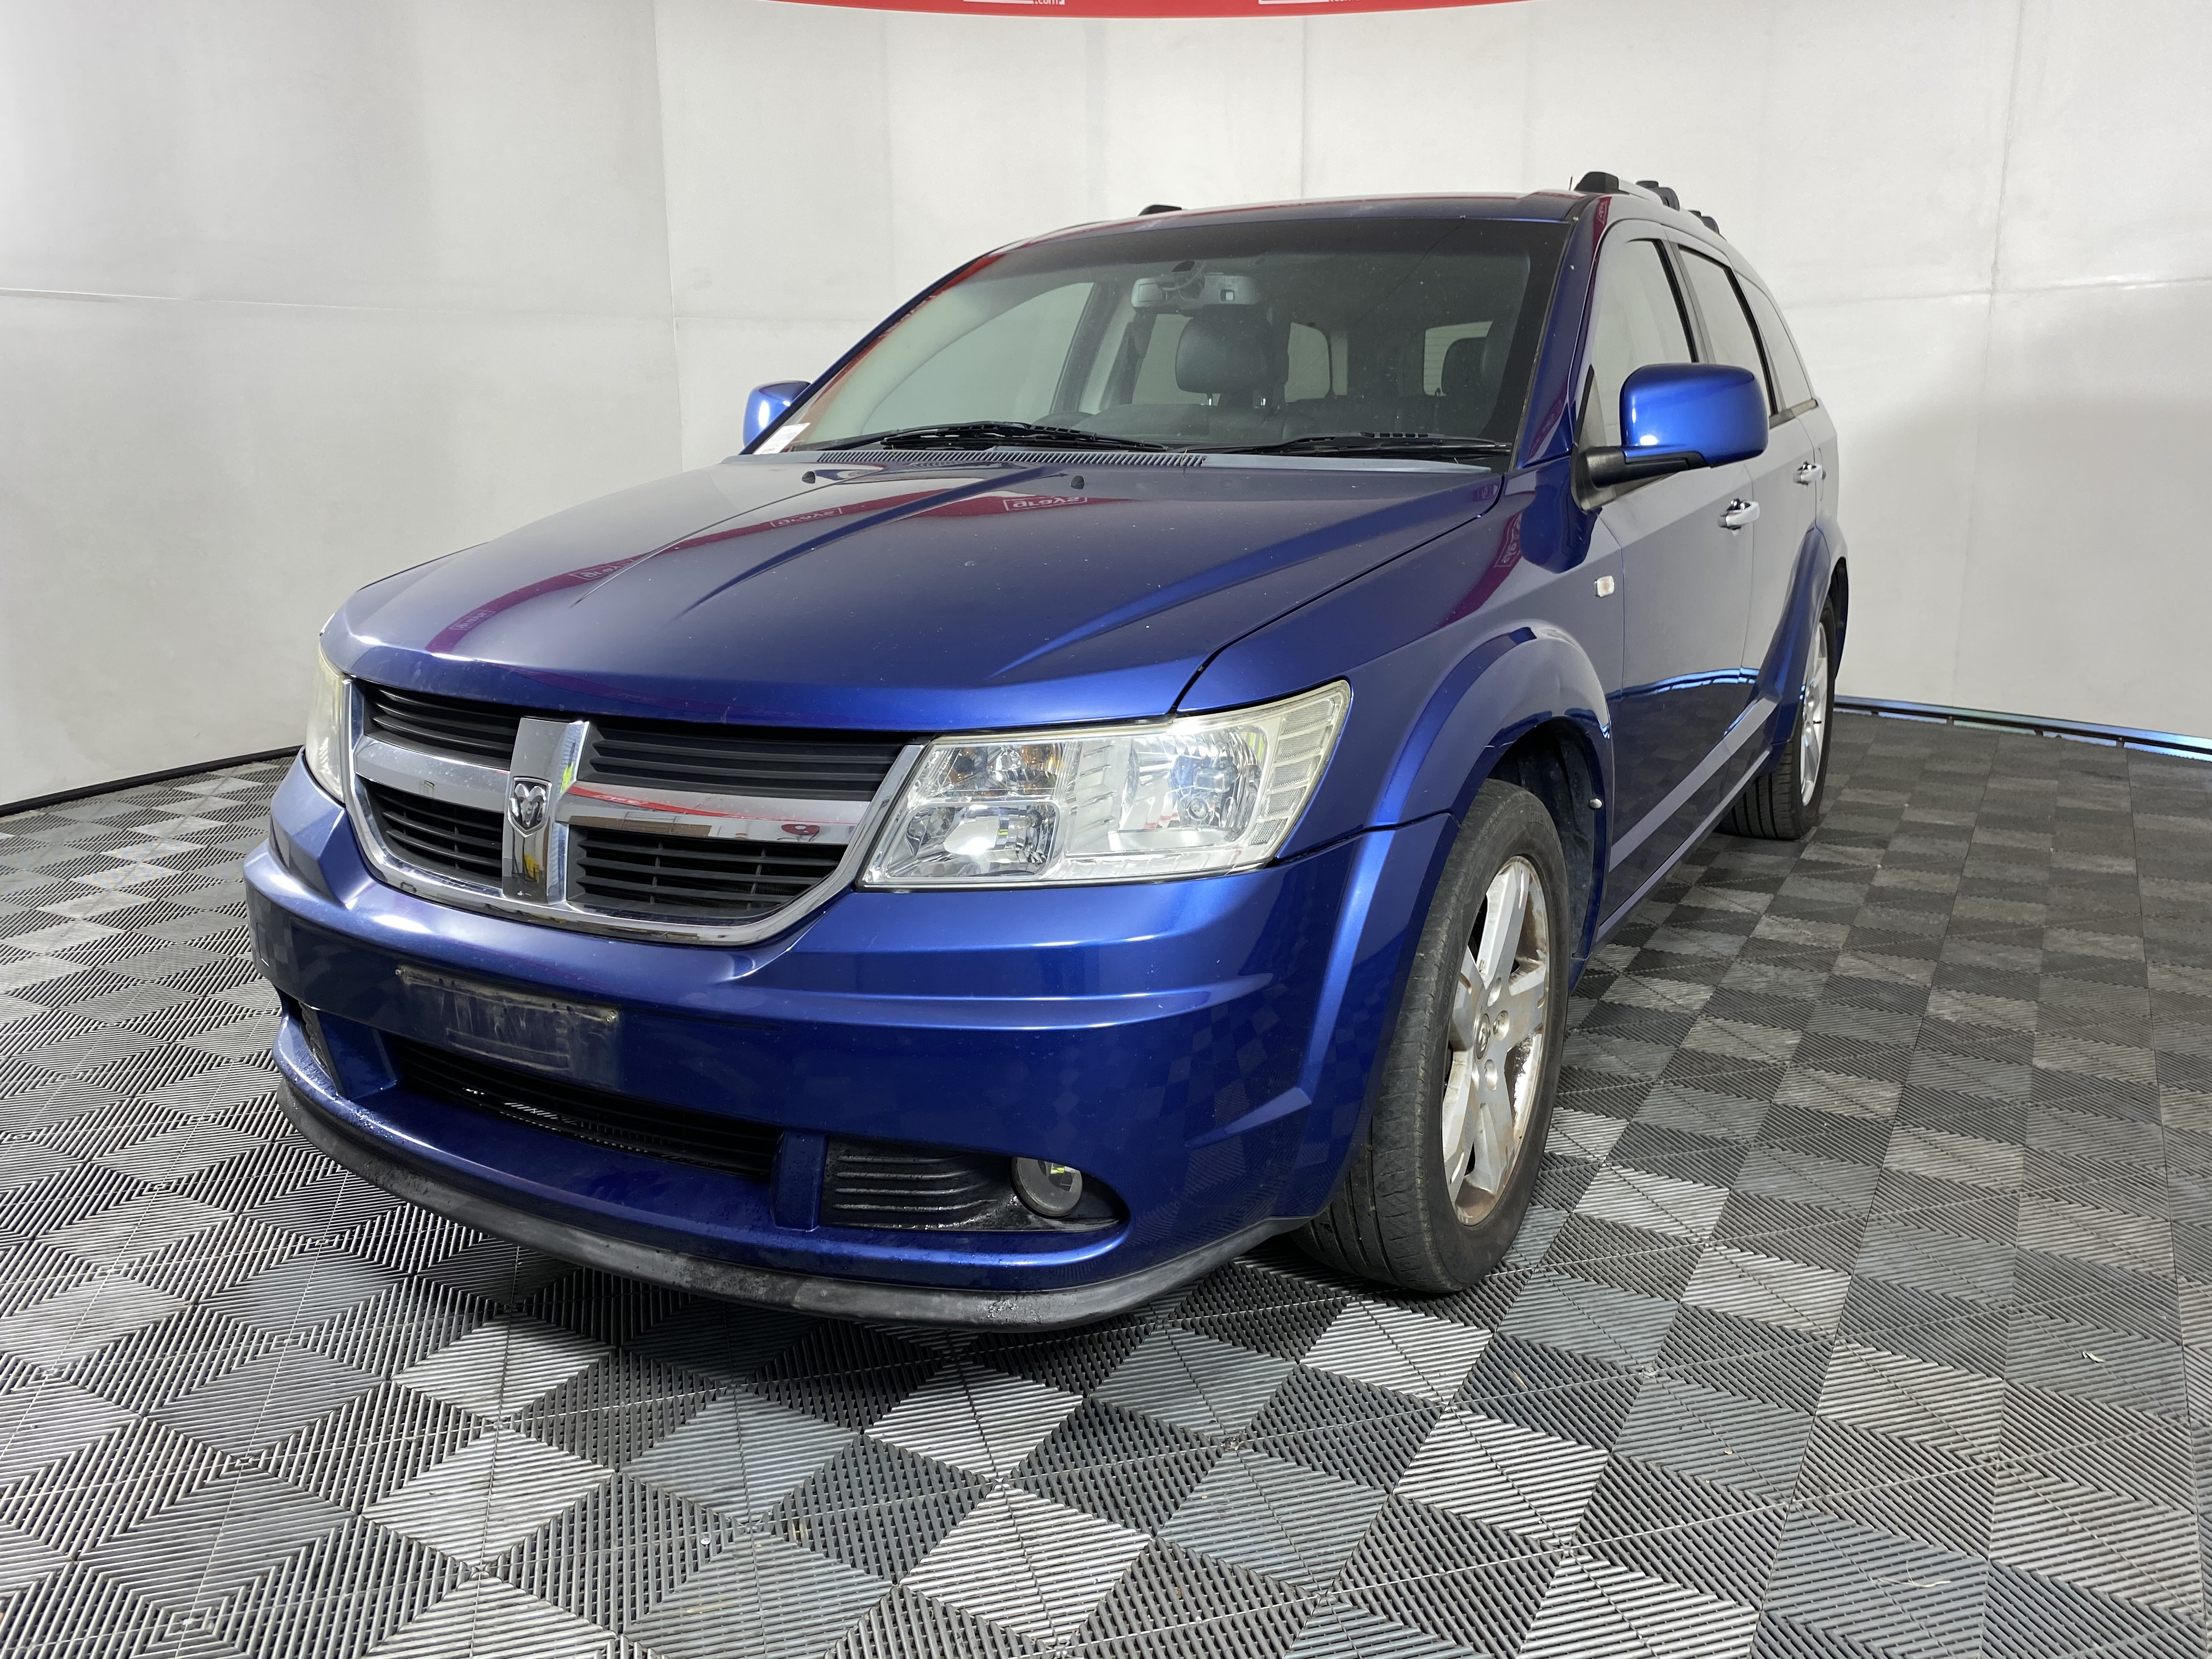 2010 (2011) Dodge Journey R/T Automatic People Mover 146,286km